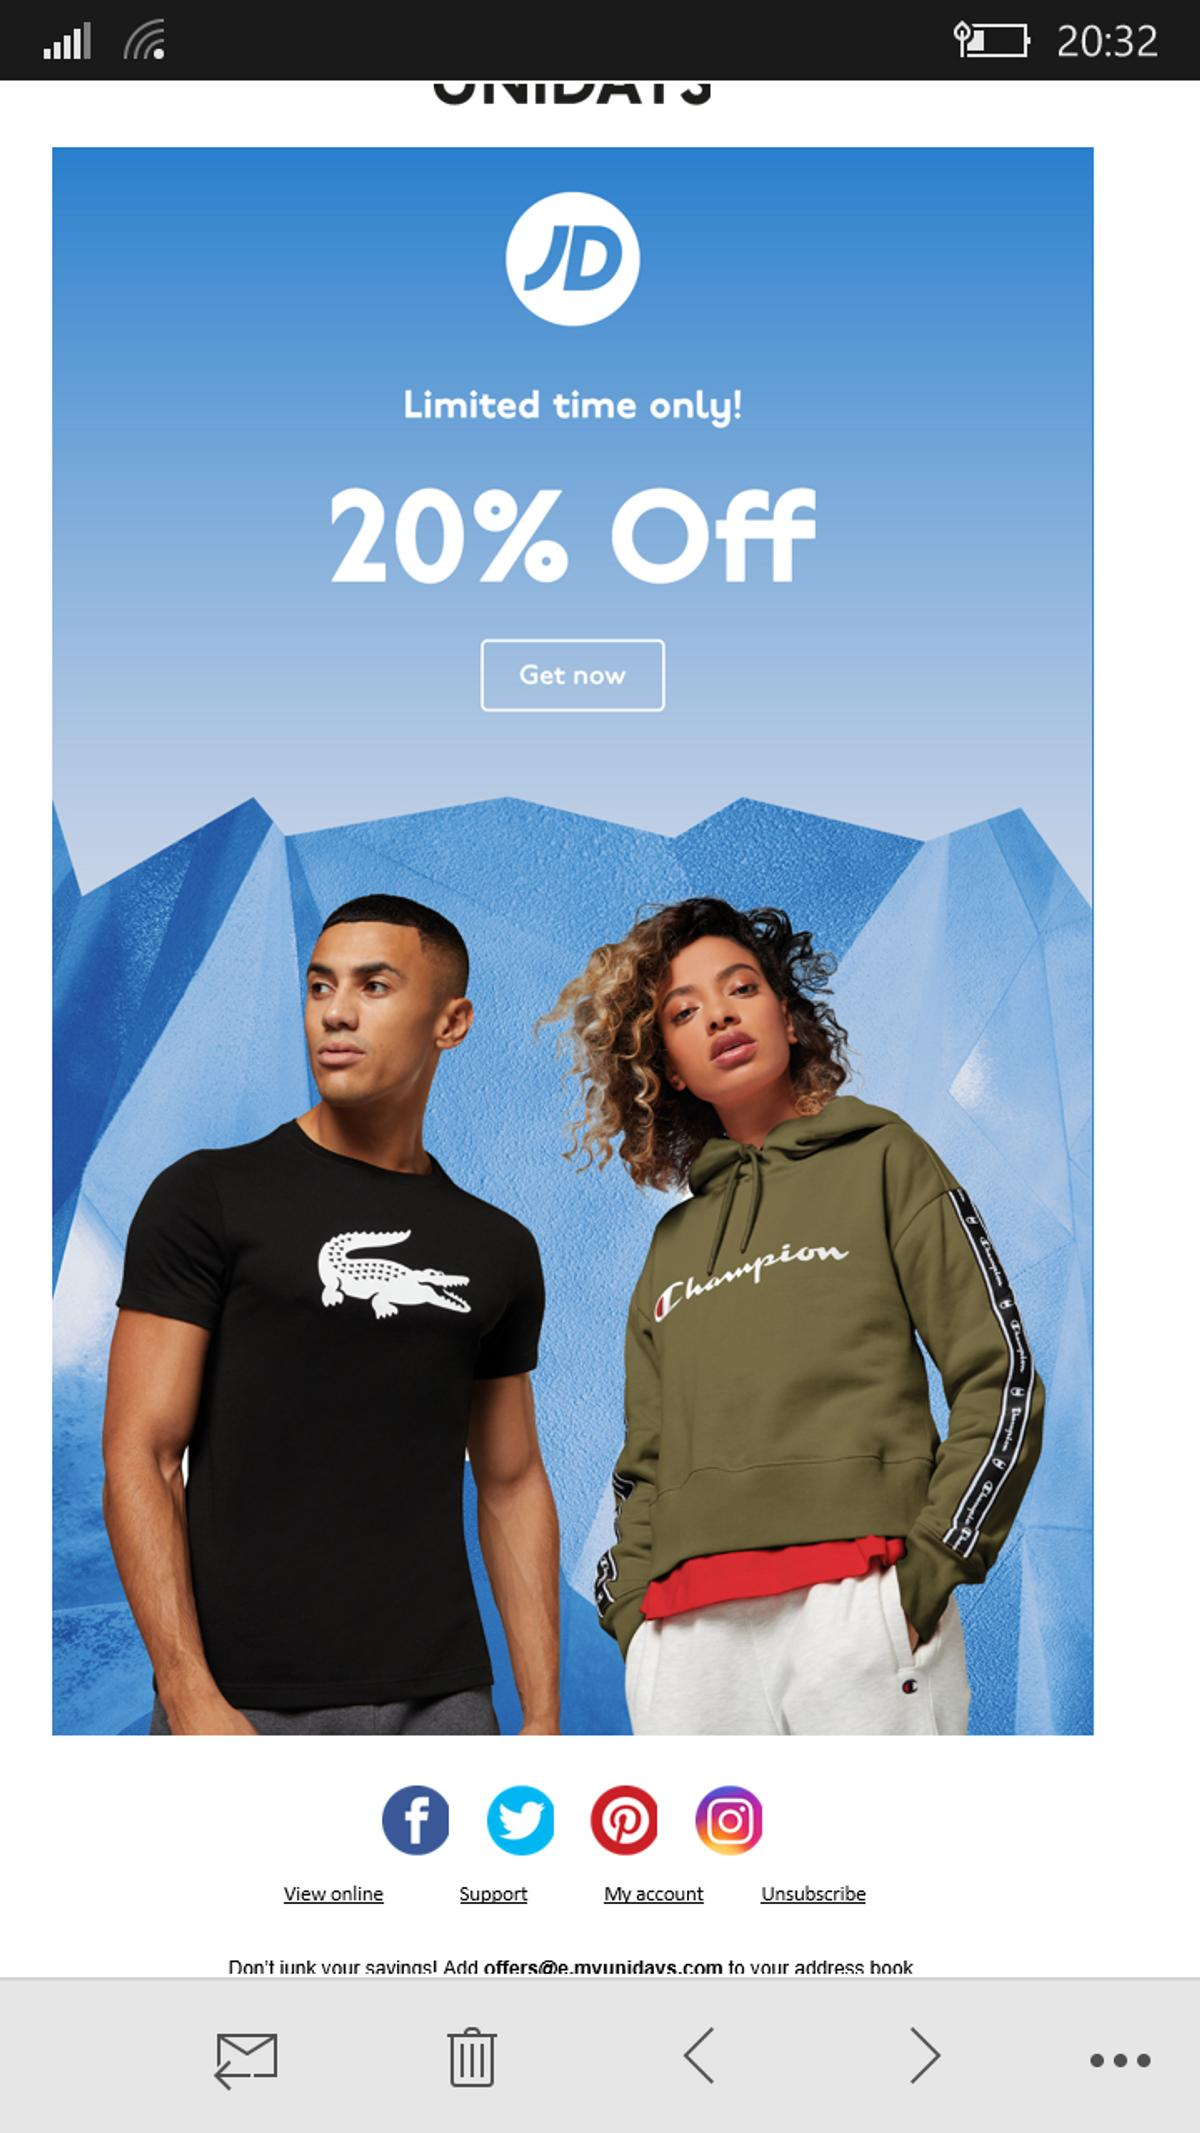 20 off jd sports discount code in se19 london for 8 00 for sale shpock 20 off jd sports discount code